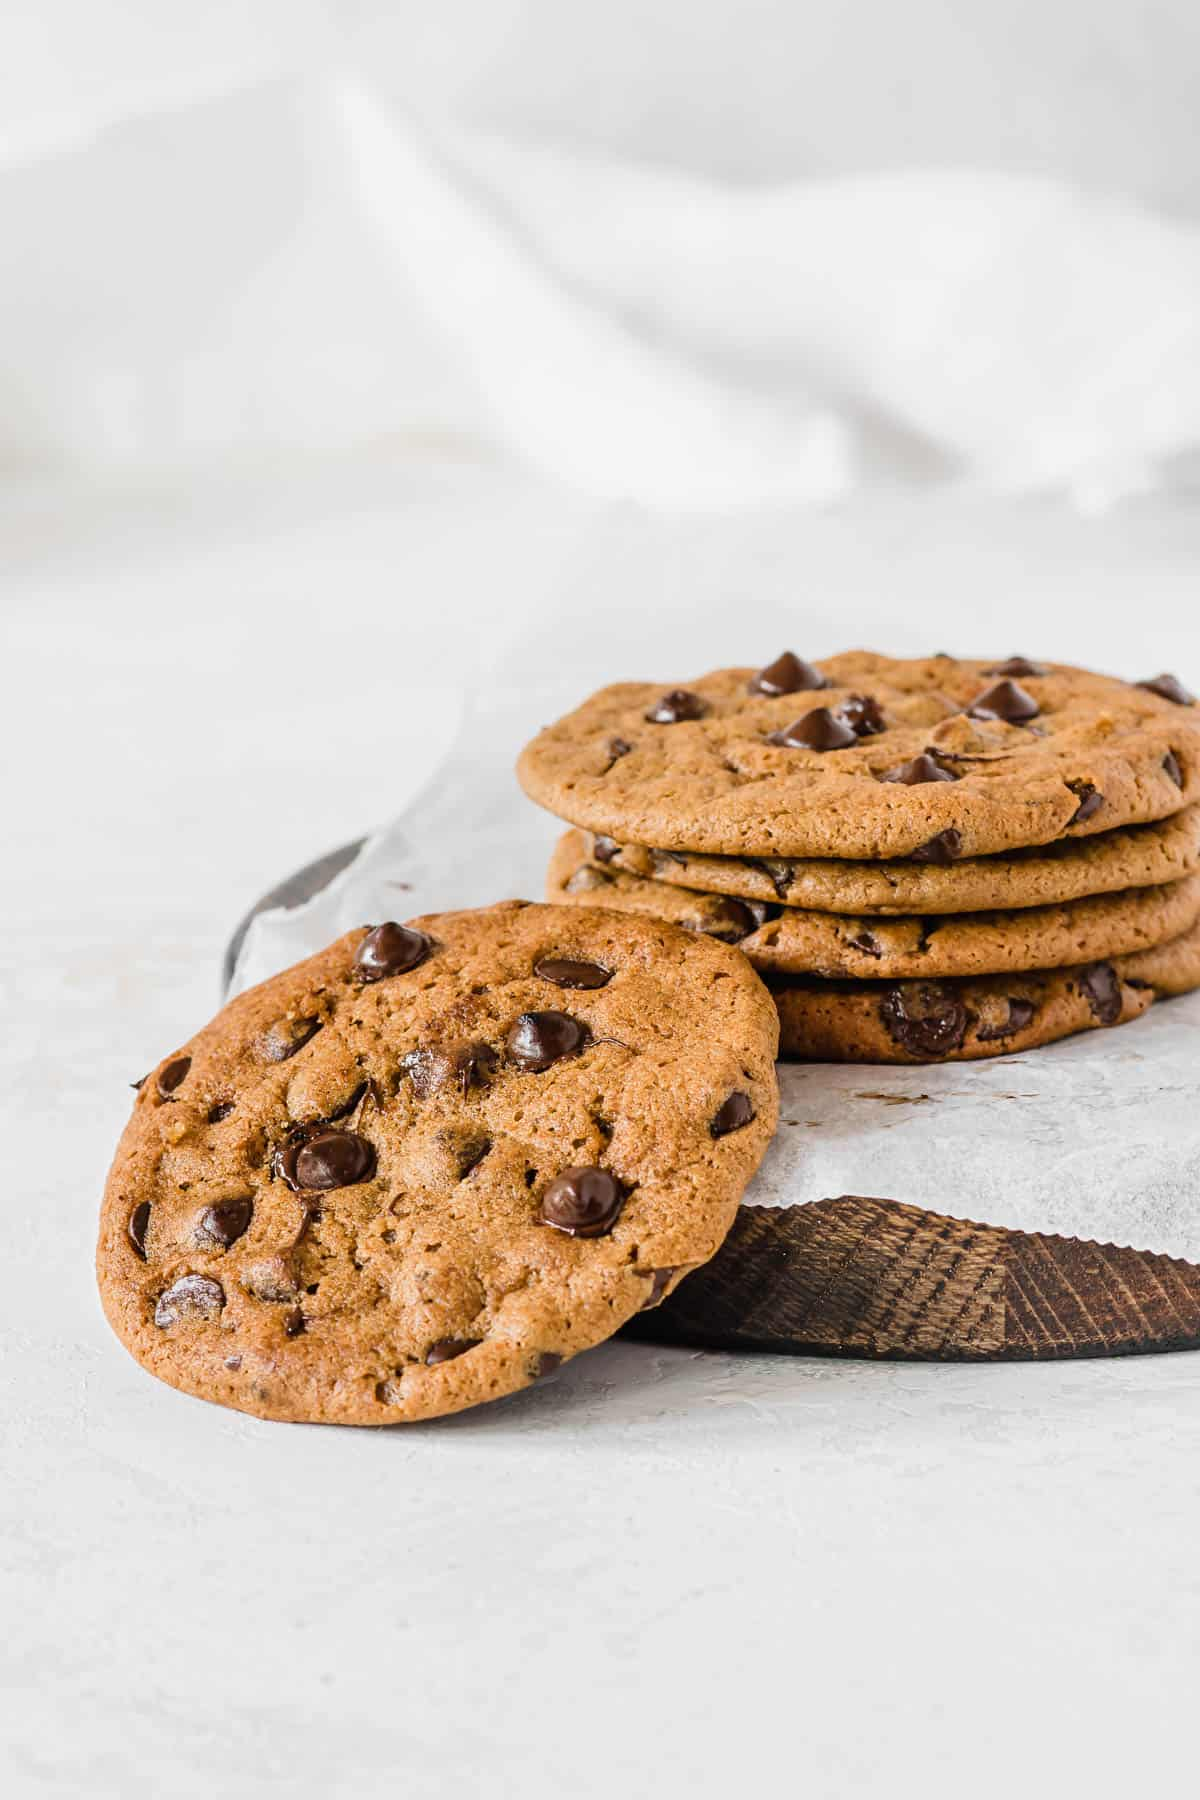 Stack of chocolate chip cookies on a parchment paper, over a round brown cutting board